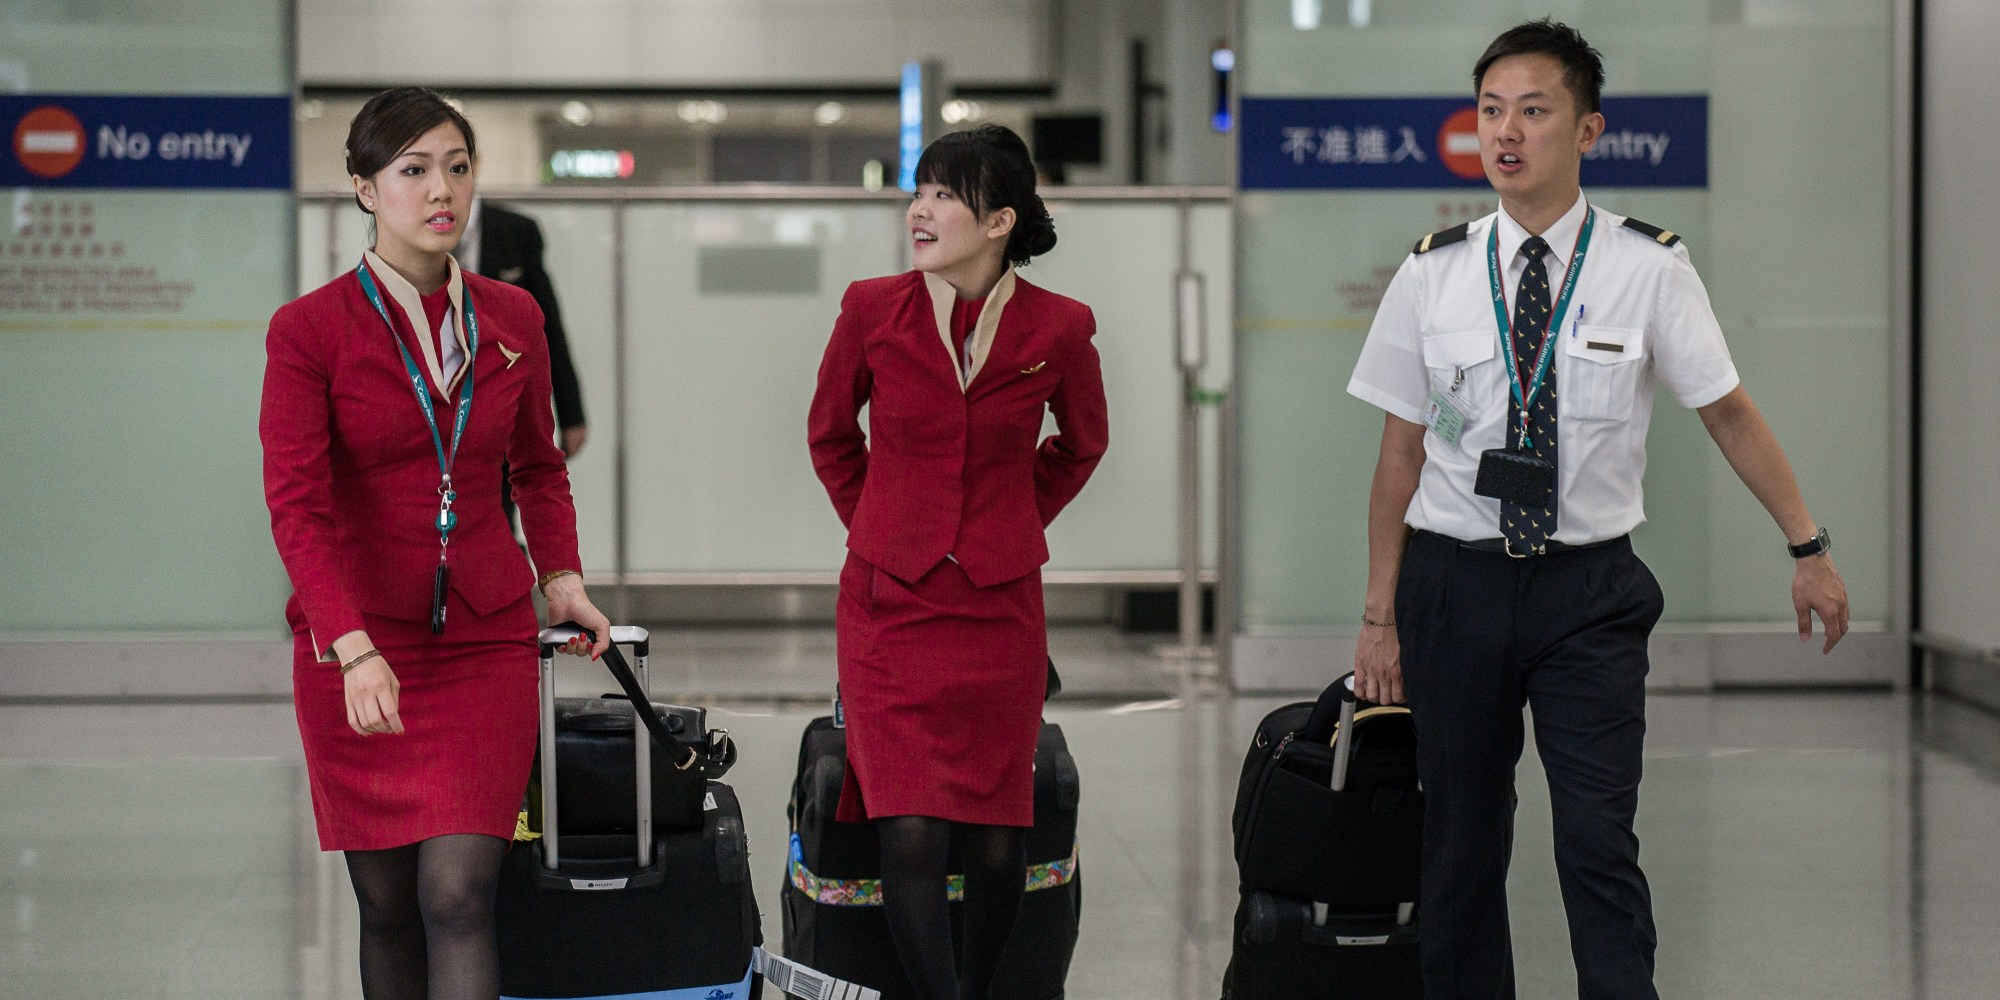 robbery flight attendant and officer It did seem strange to sharbonneau that the flight attendant who sold the   fashion usually opt to complain to the airline rather than the police,.